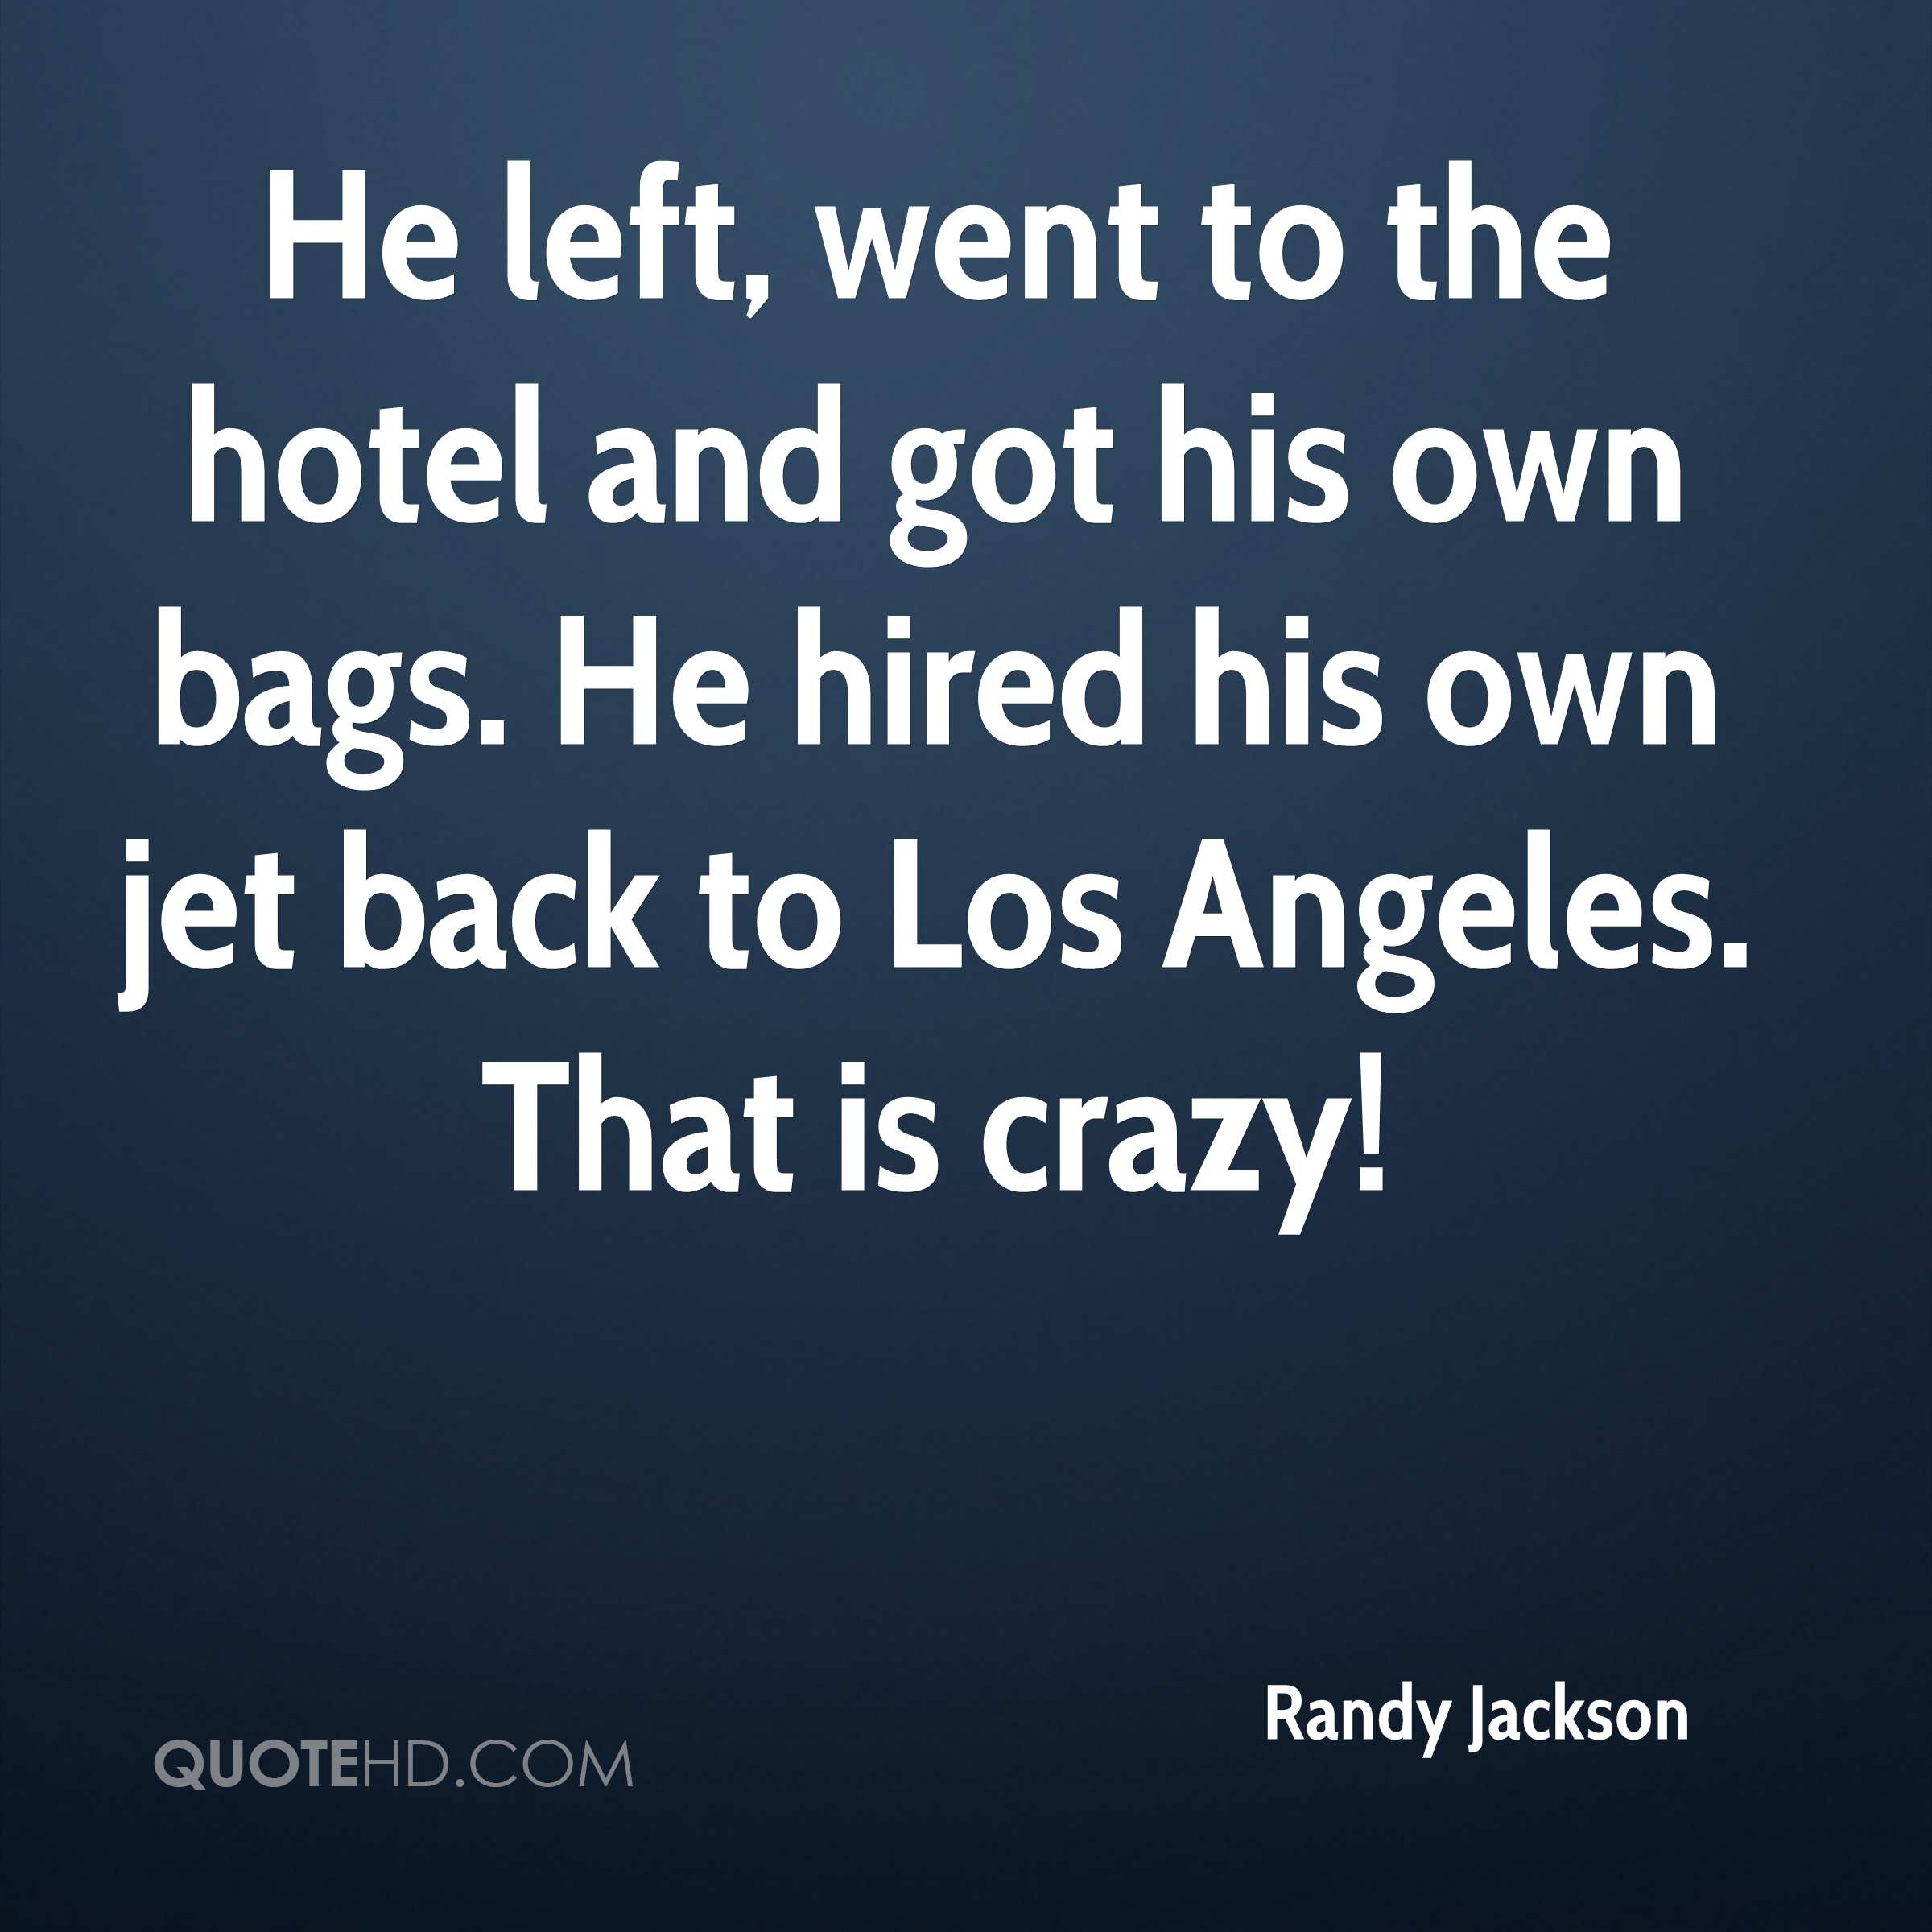 He left, went to the hotel and got his own bags. He hired his own jet back to Los Angeles. That is crazy!